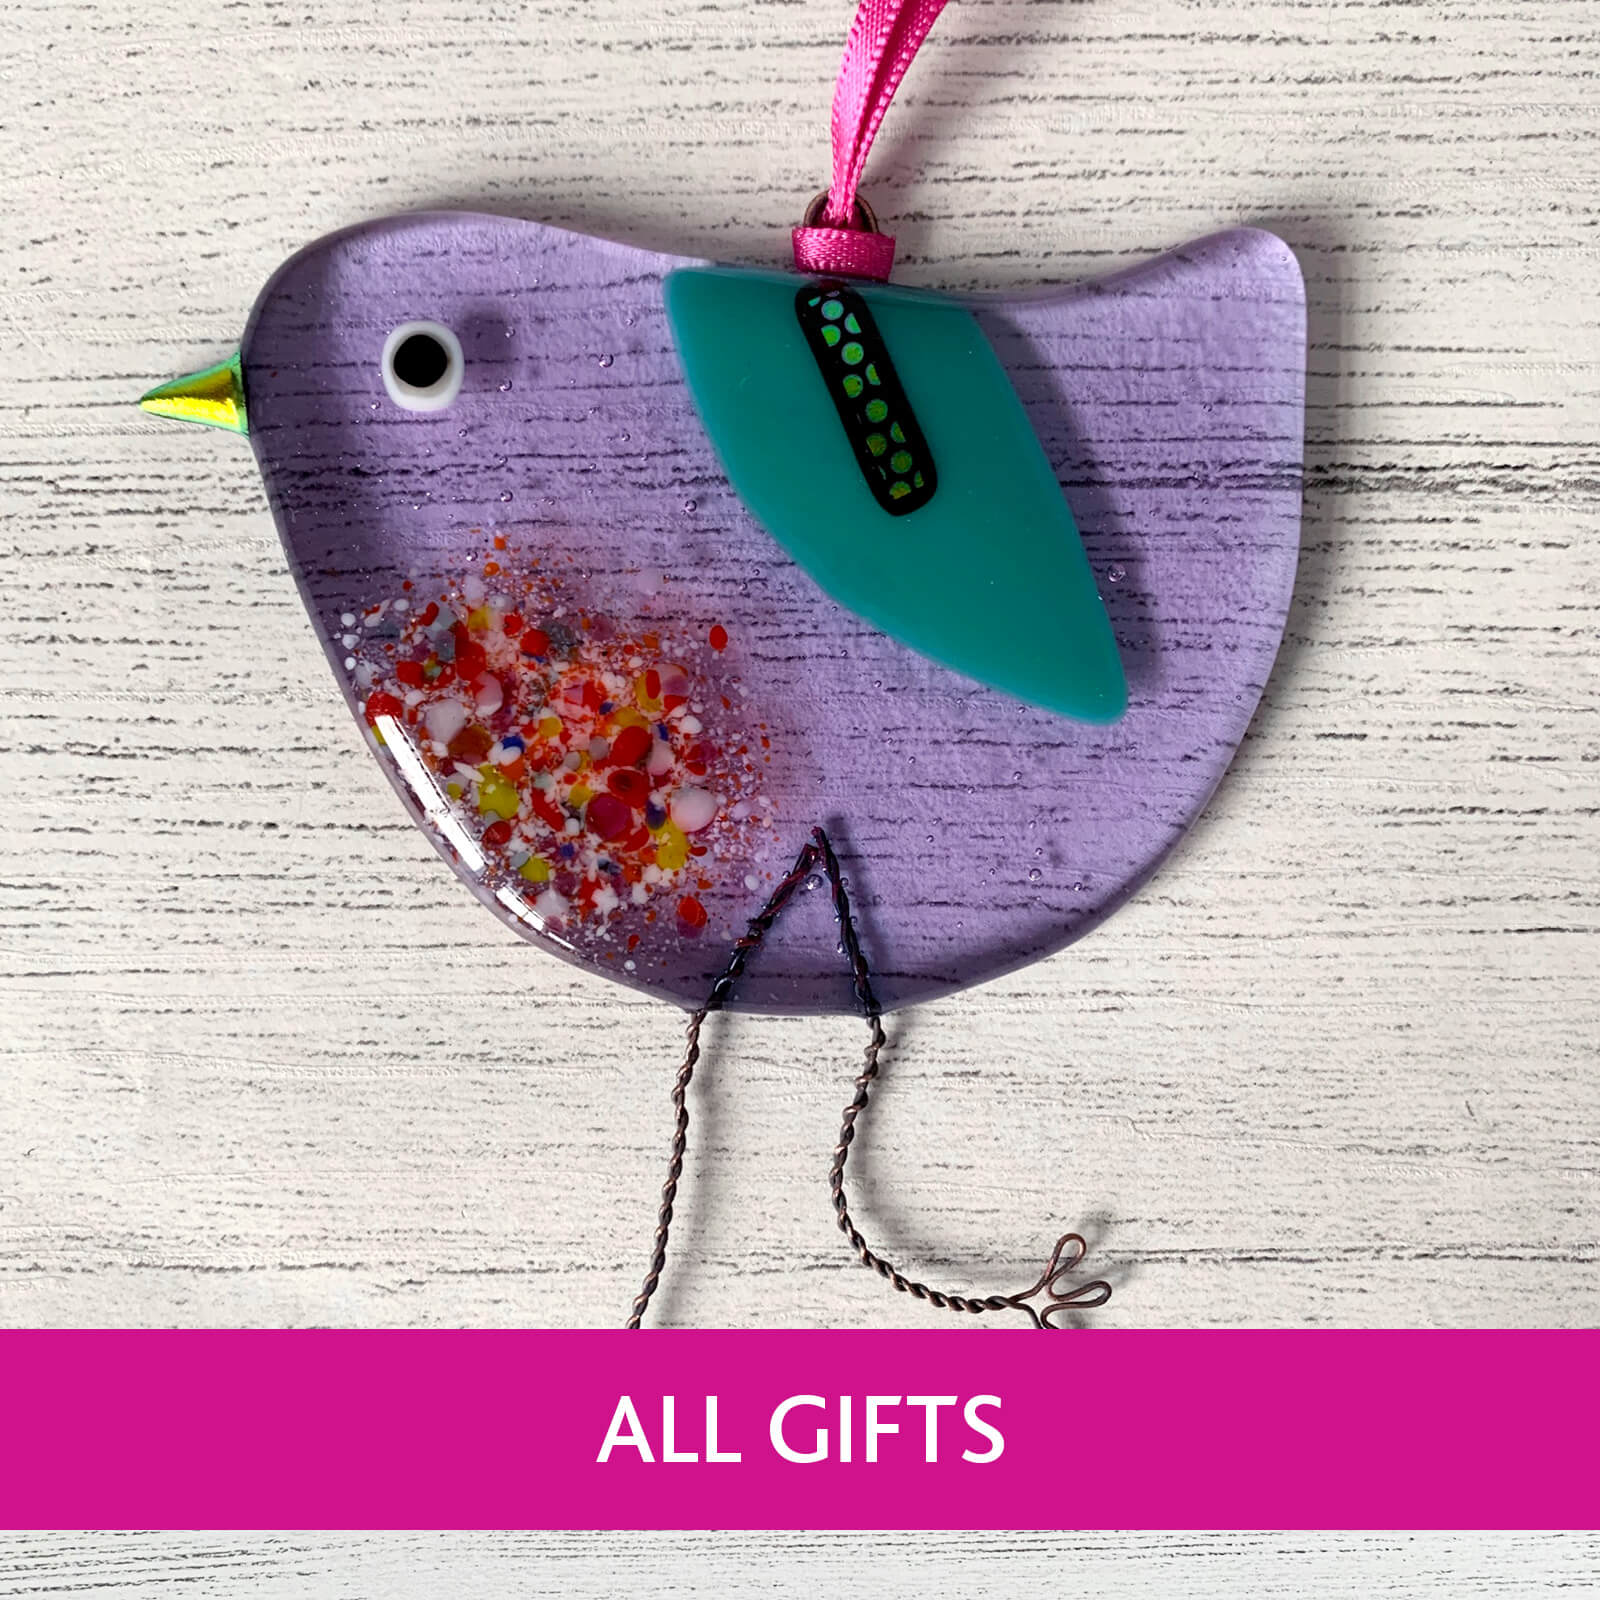 Ferrers Gallery, unique and handcrafted British made All Gifts Collection